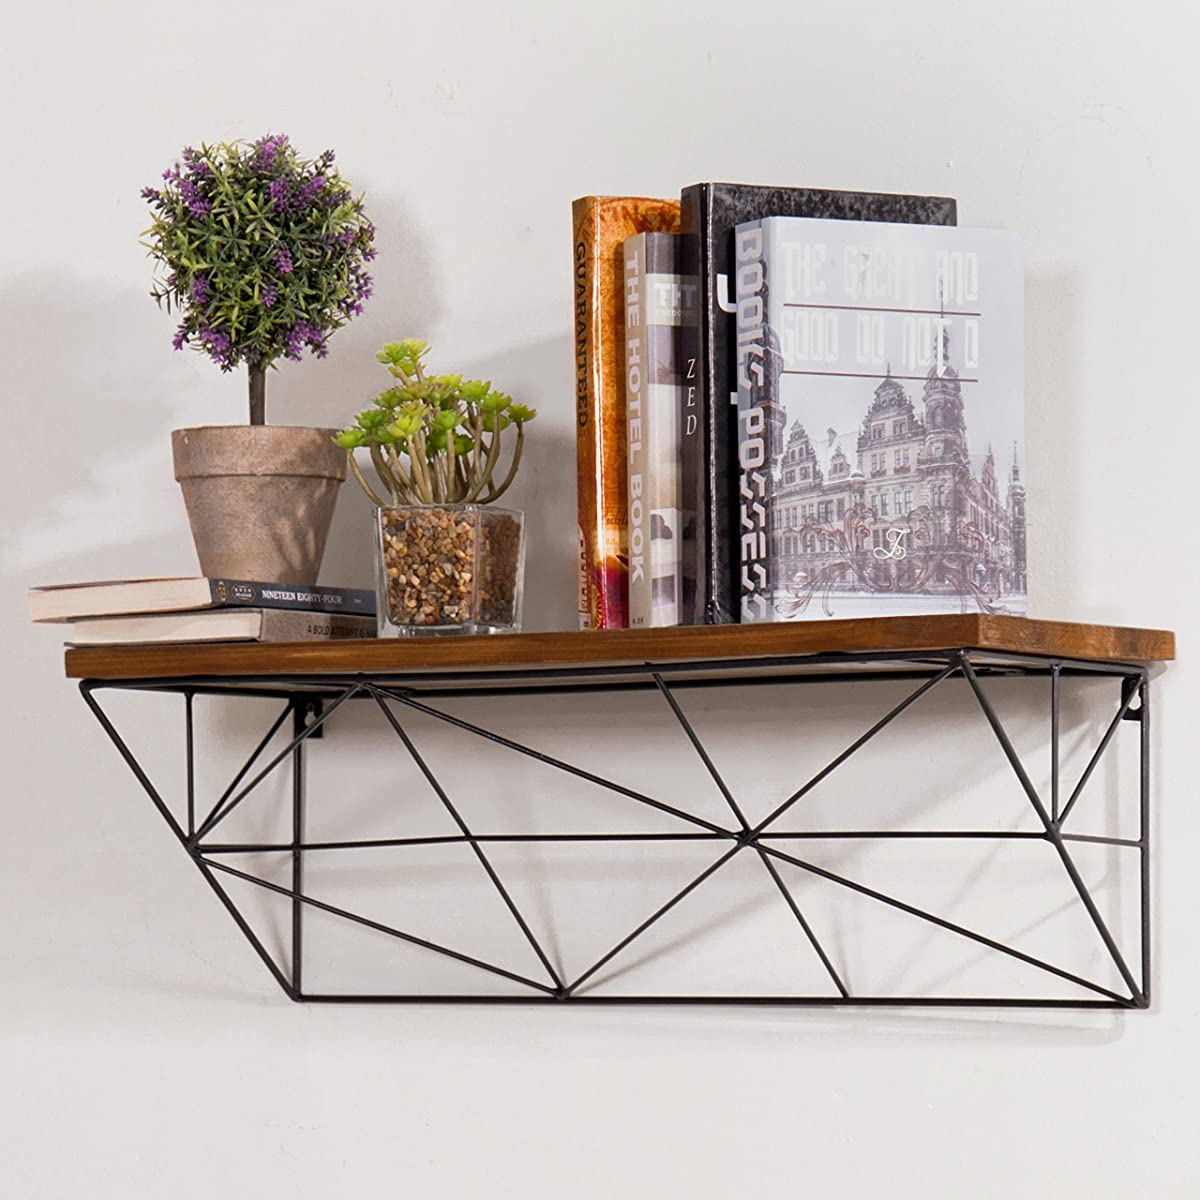 MyGift Modern Wall-Mounted 24-Inch Wood & Metal Wire Floating Shelf